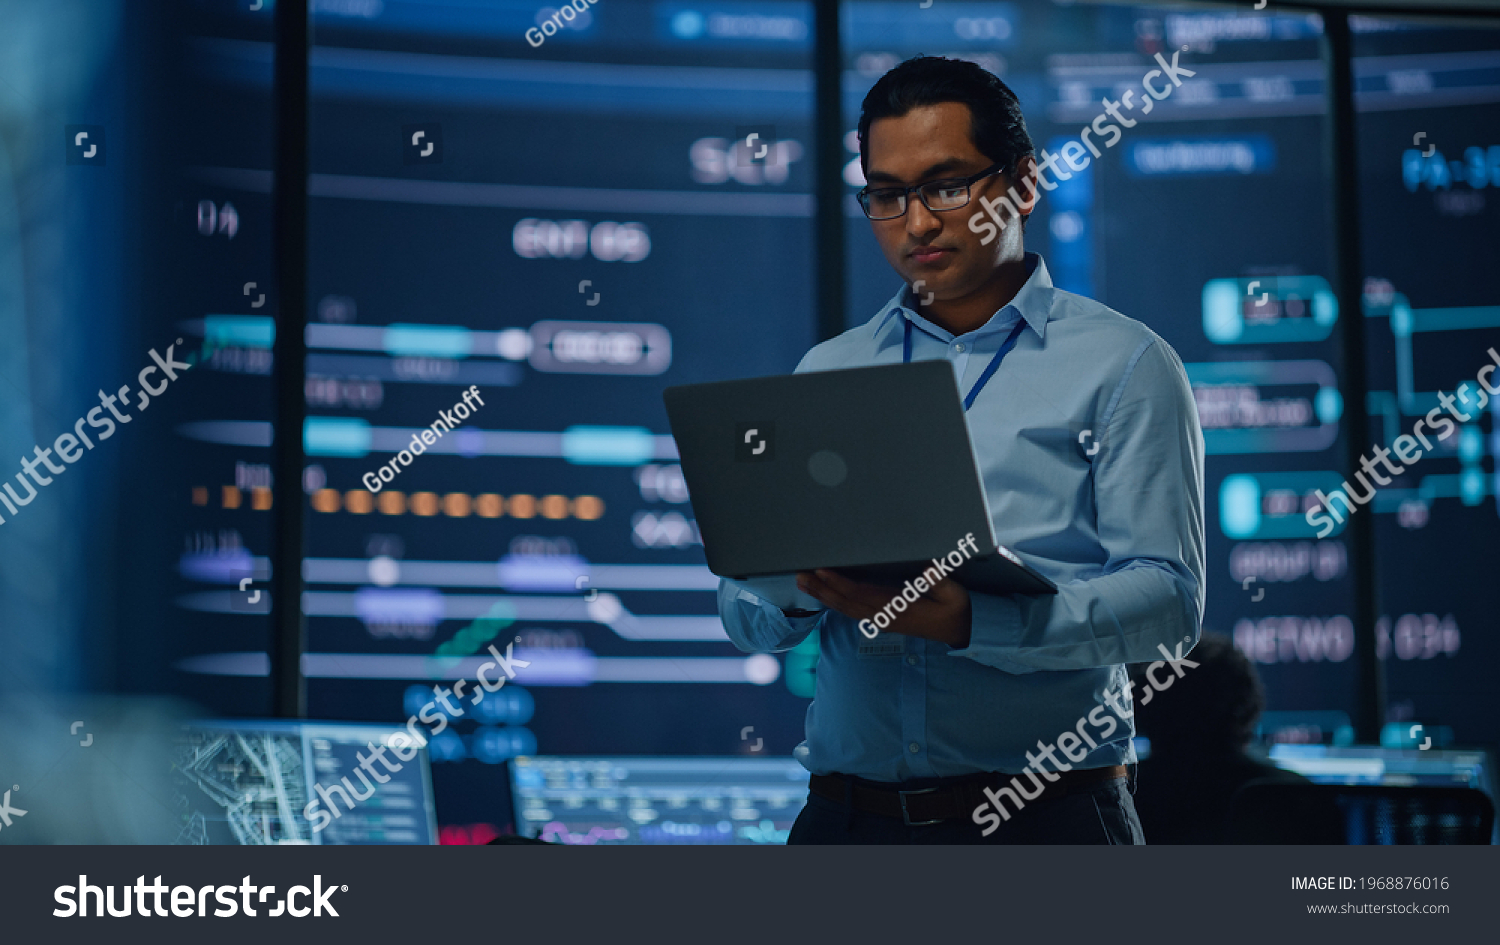 Young Multiethnic Male Government Employee Uses Laptop Computer in System Control Monitoring Center. In the Background His Coworkers at Their Workspaces with Many Displays Showing Technical Data. #1968876016